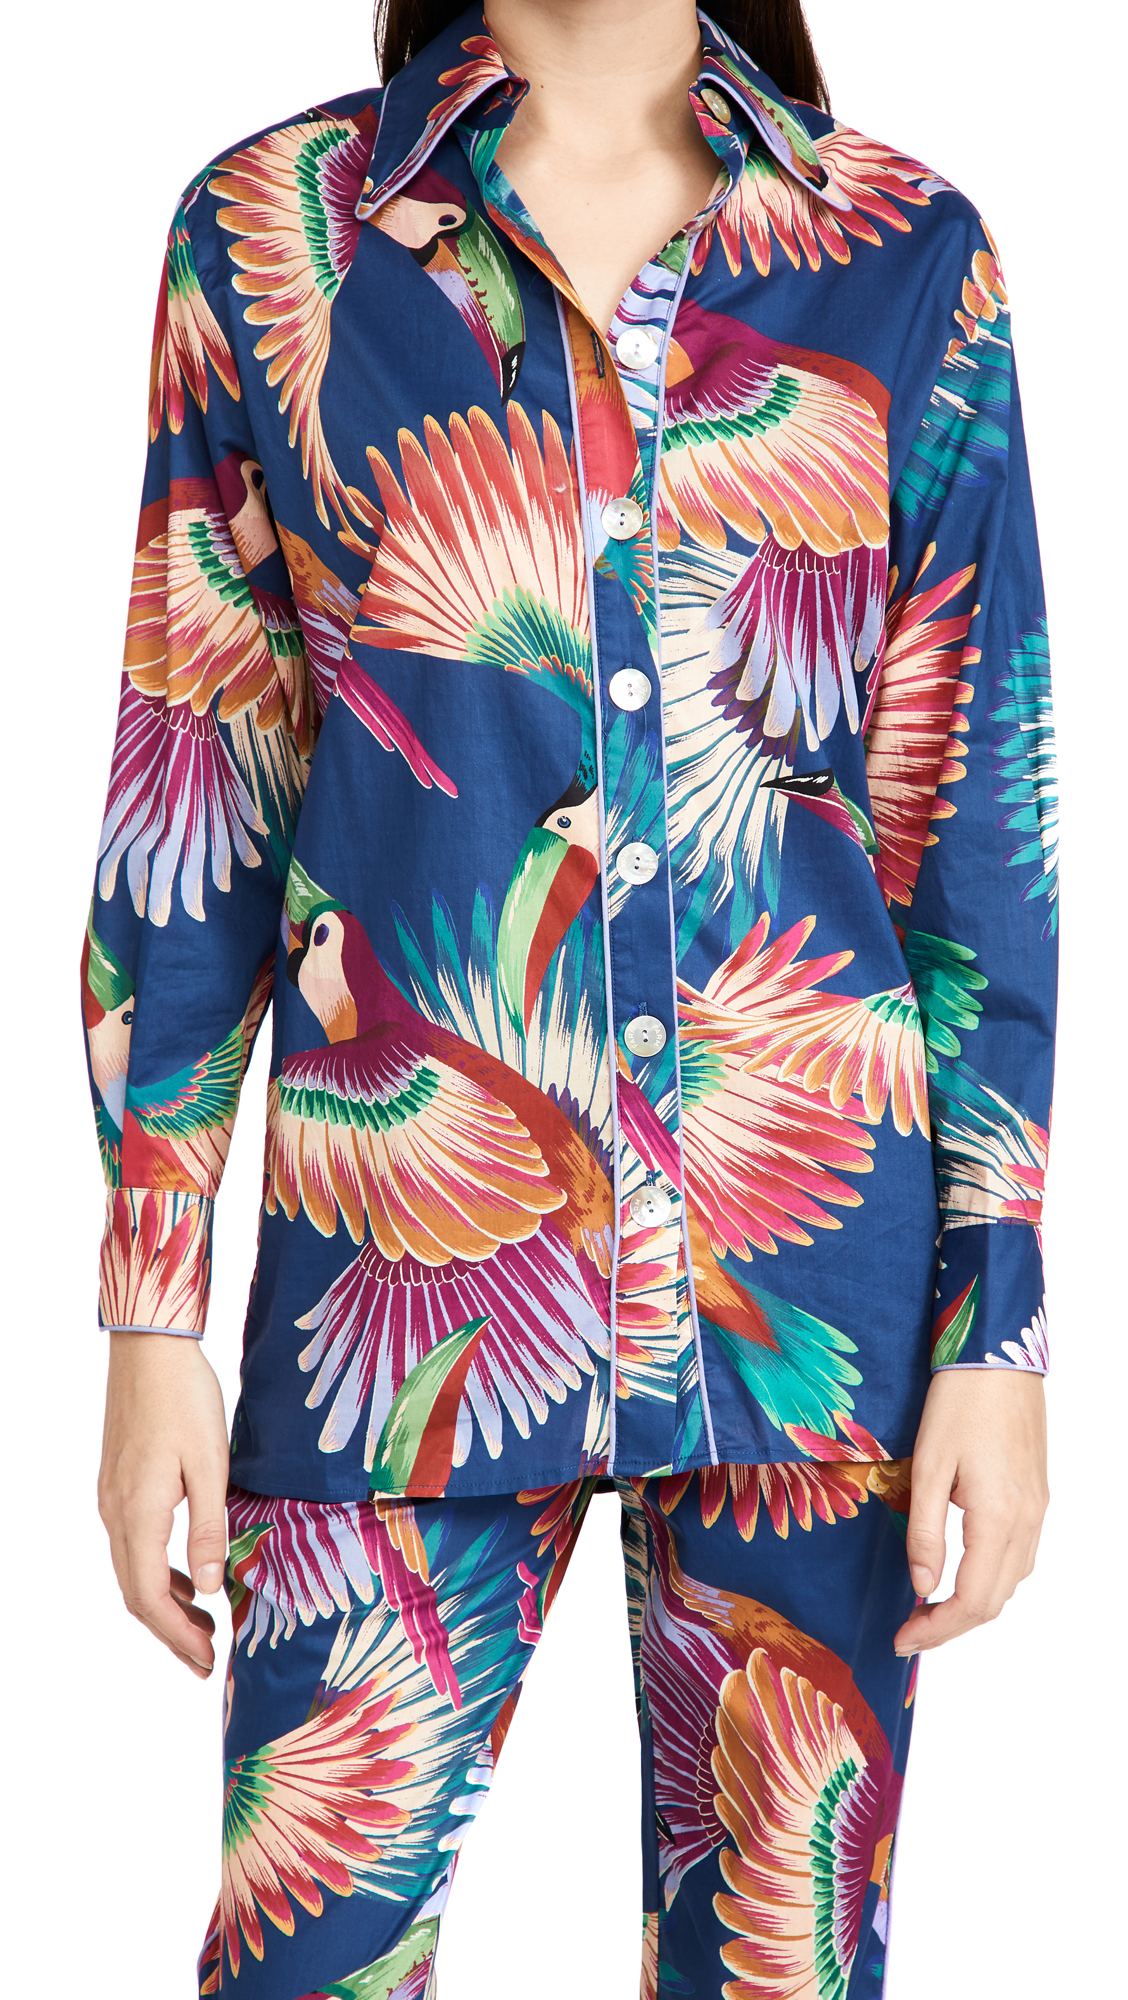 FARM Rio Colorful Toucans Pajama Shirt